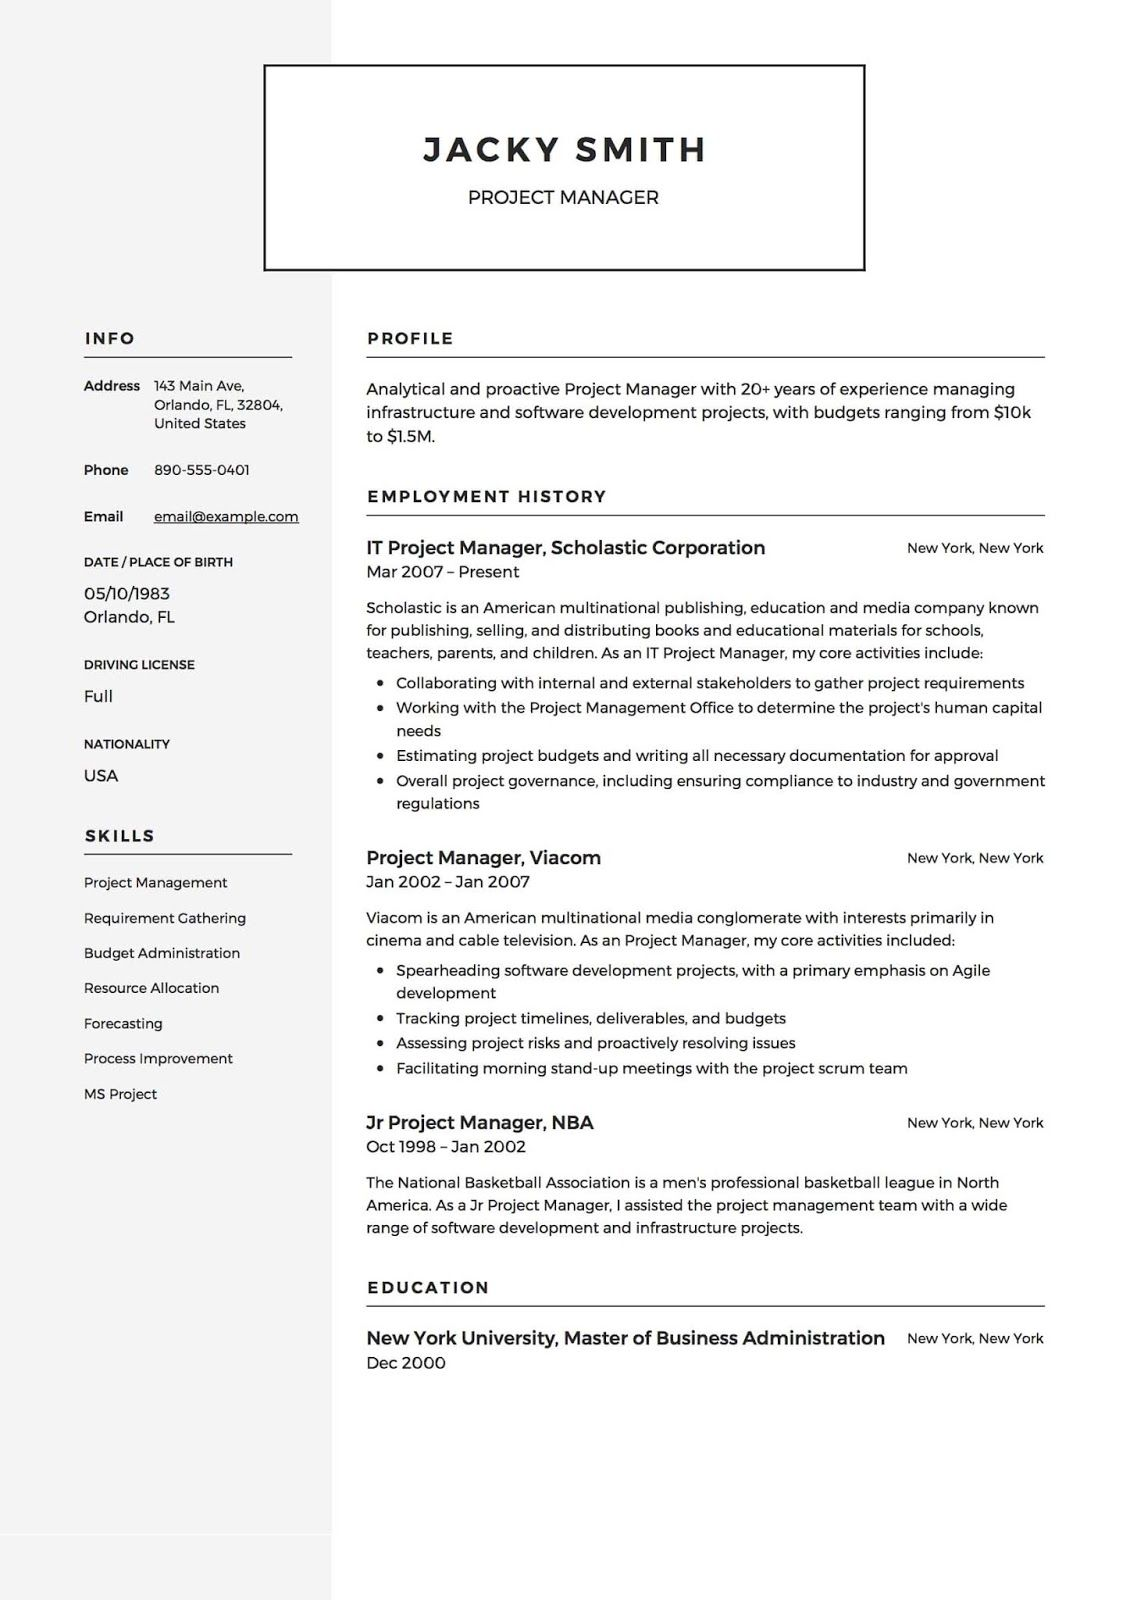 Project Manager Resume Templates 2019 2020